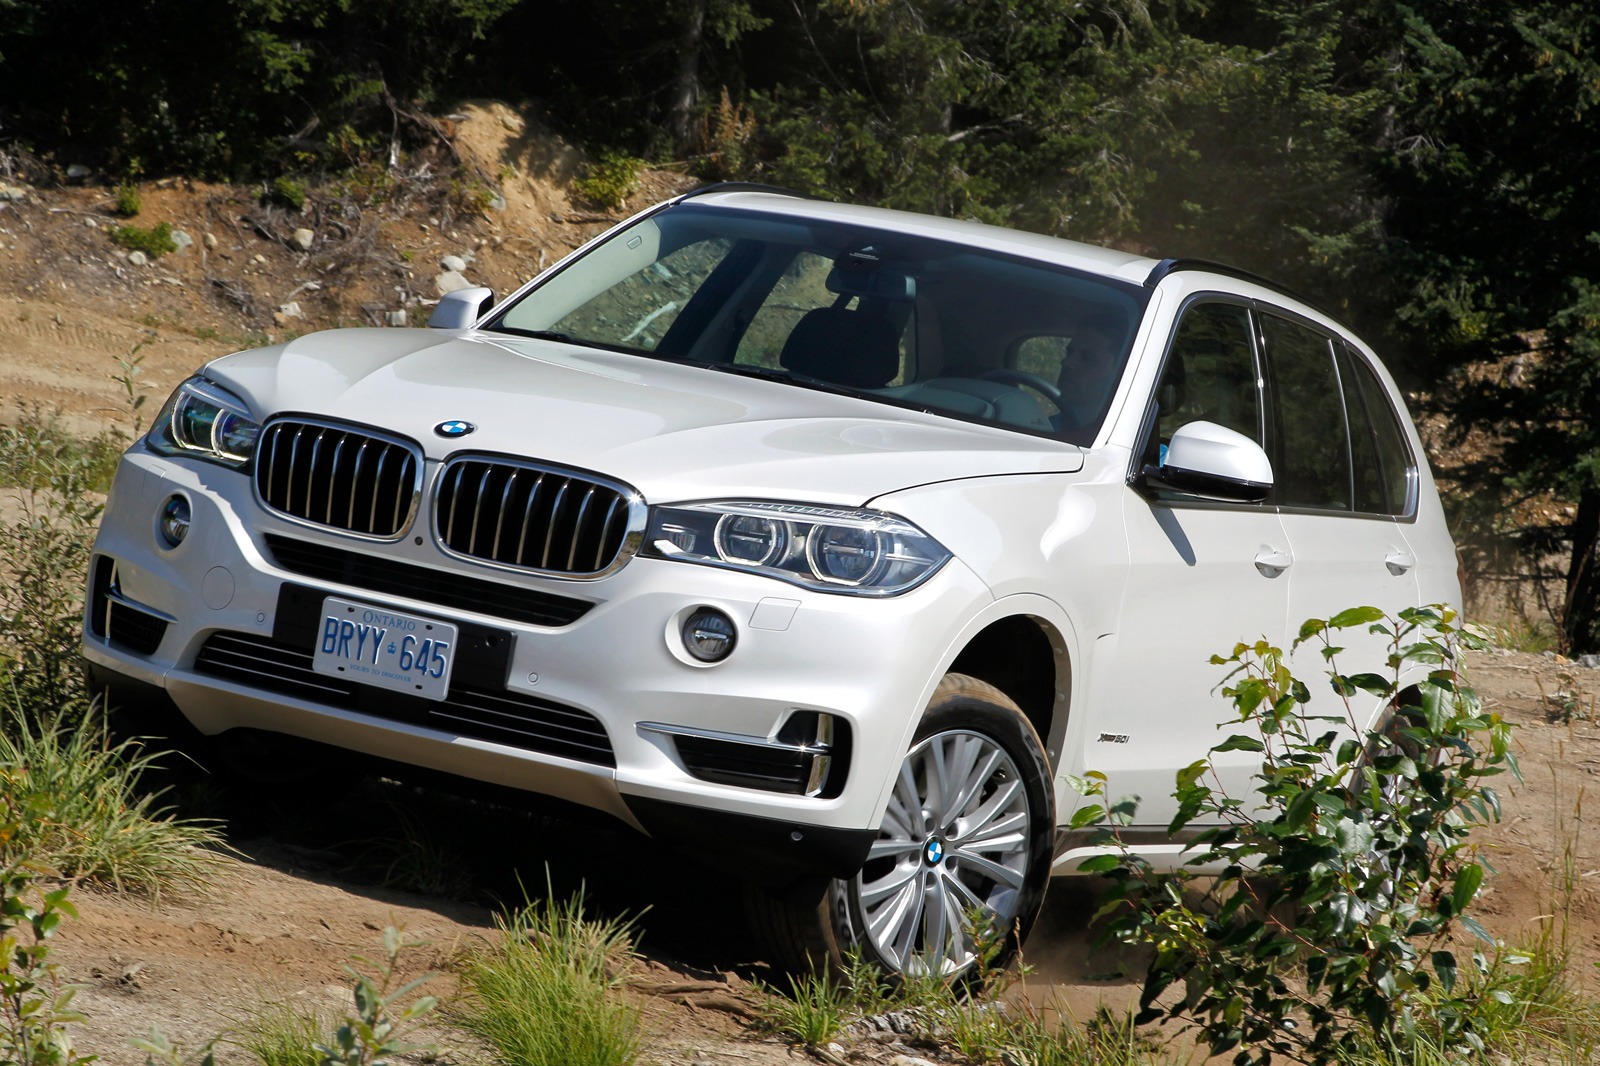 2014 bmw f15 x5 xdrive50i test drive by edmunds autoevolution. Black Bedroom Furniture Sets. Home Design Ideas